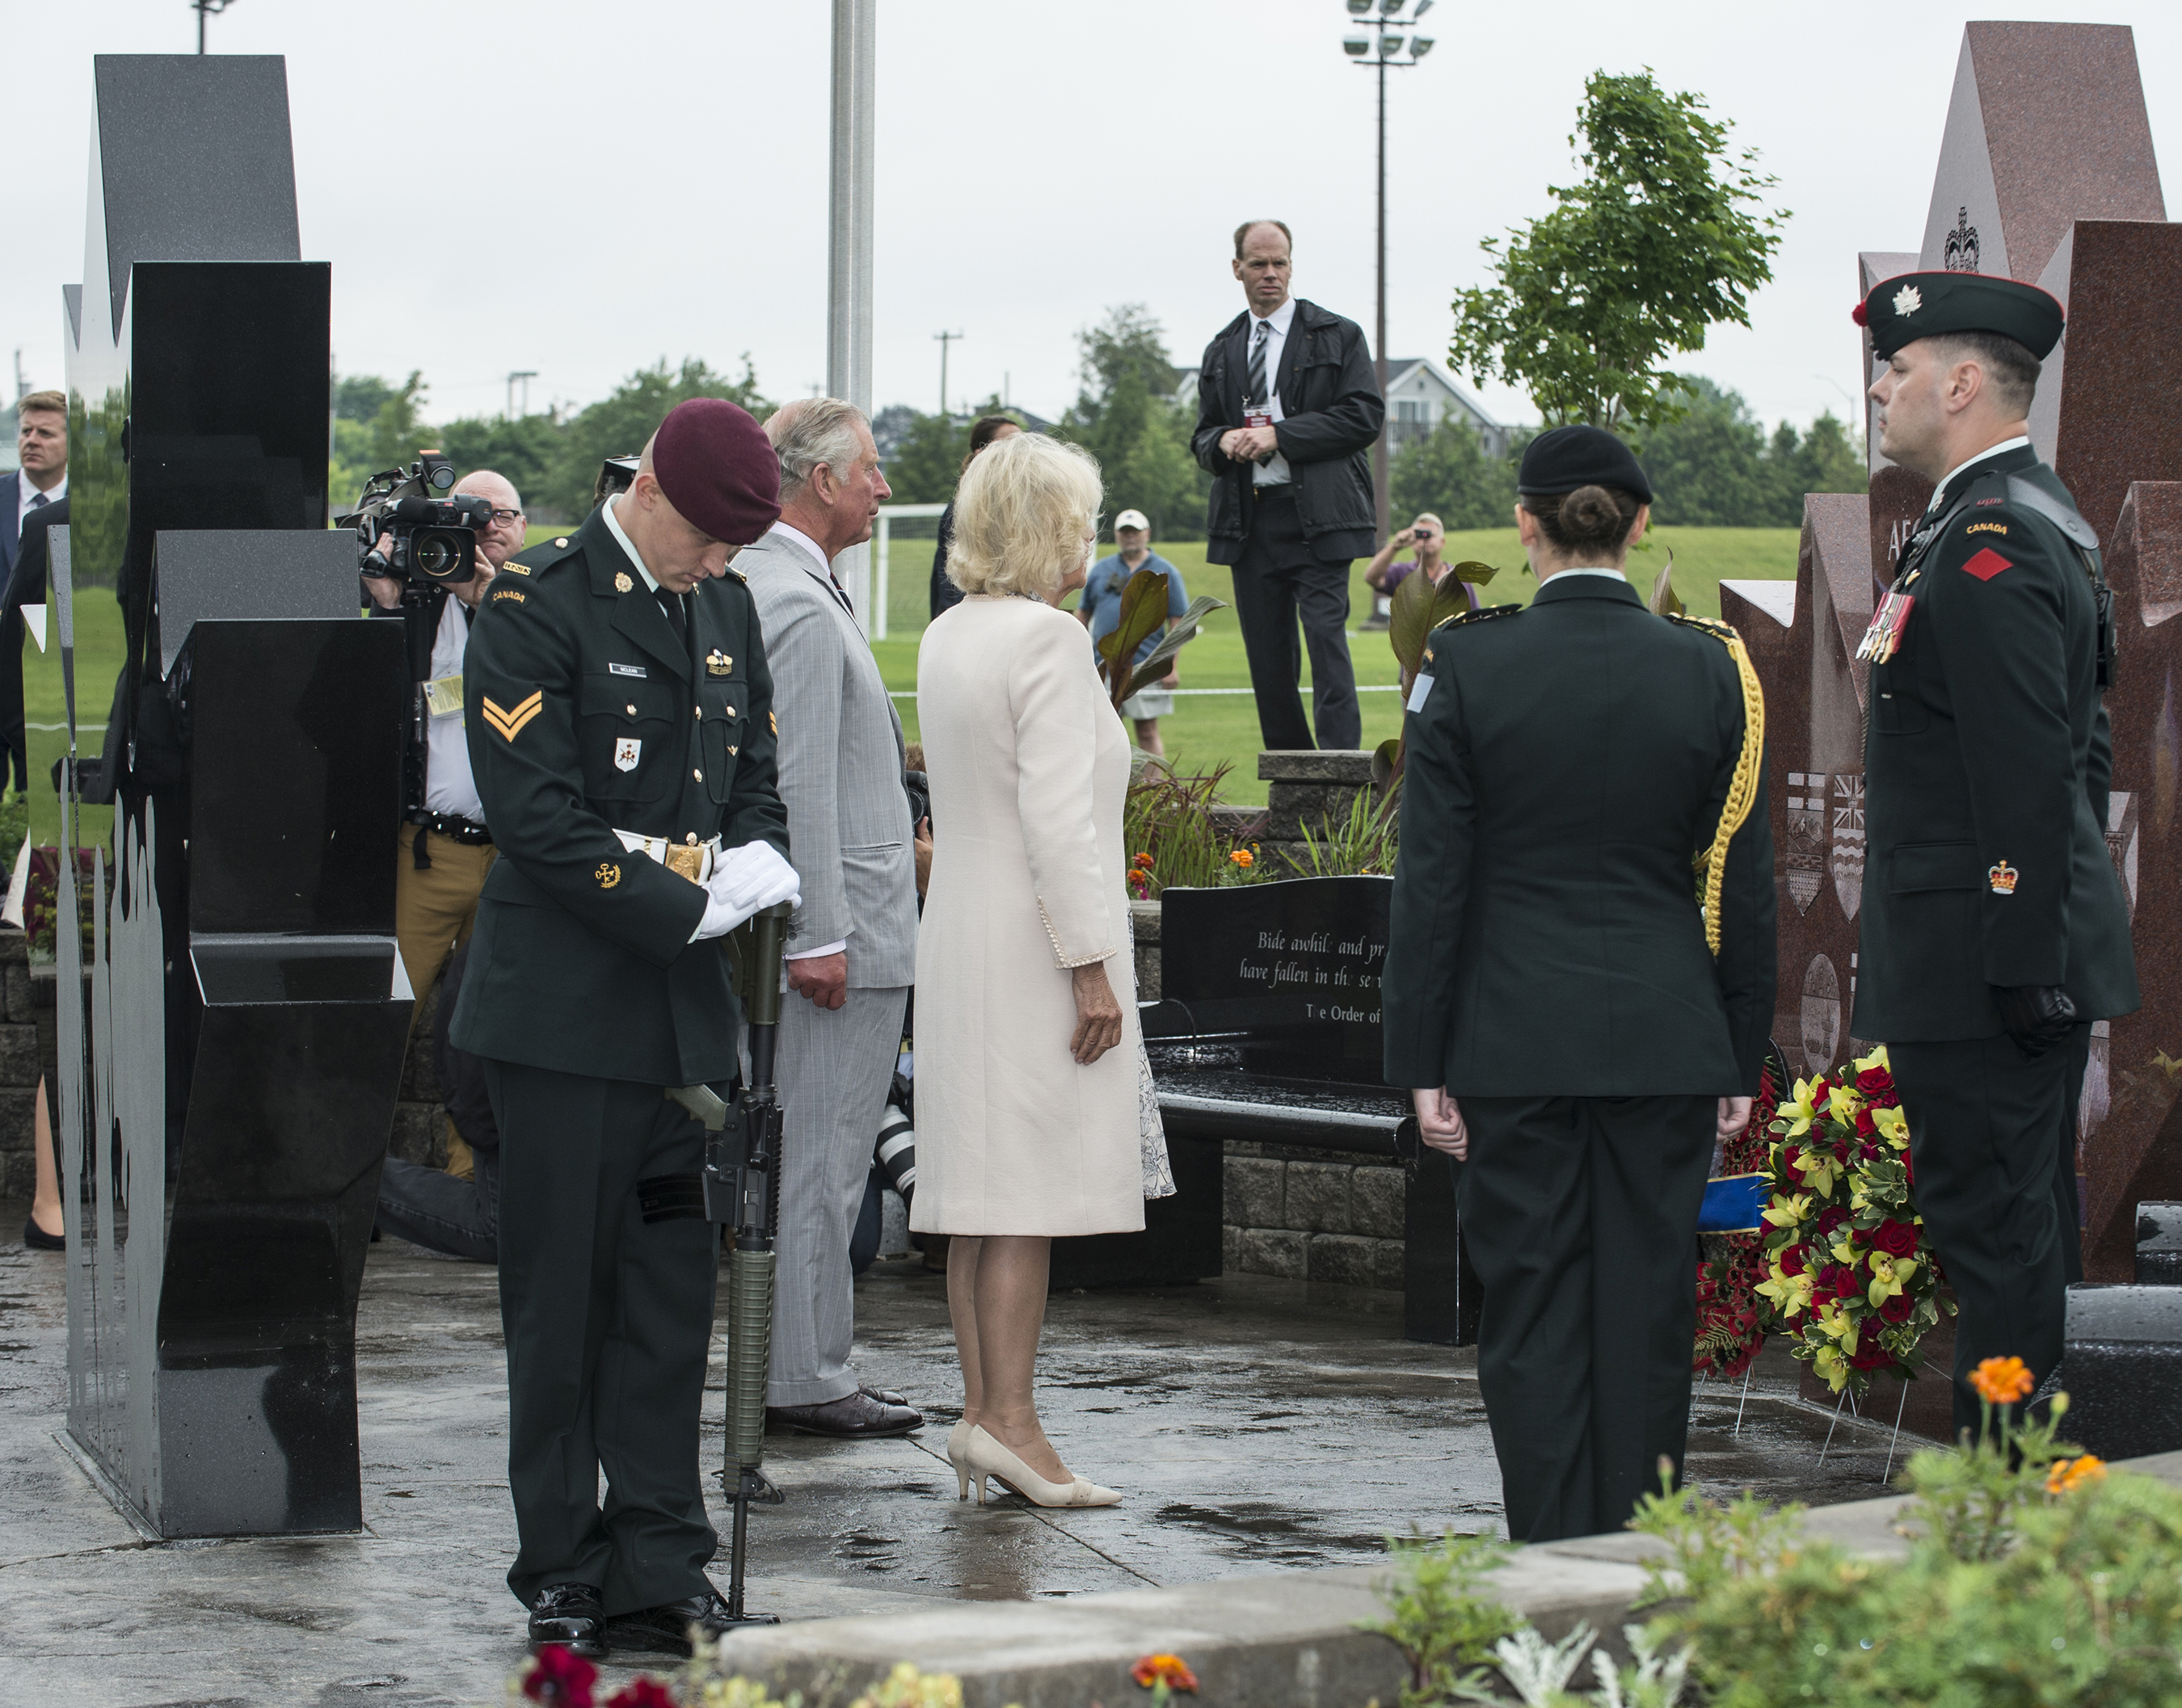 Prince Charles and Camilla, Duchess of Cornwall, pay their respects at the Afghanistan Repatriation Memorial, which honours the memory of the Canadian men and women who gave their lives during the conflict in Afghanistan. PHOTO: Corporal Ken Beliwicz,  TN12-2017-0398-035